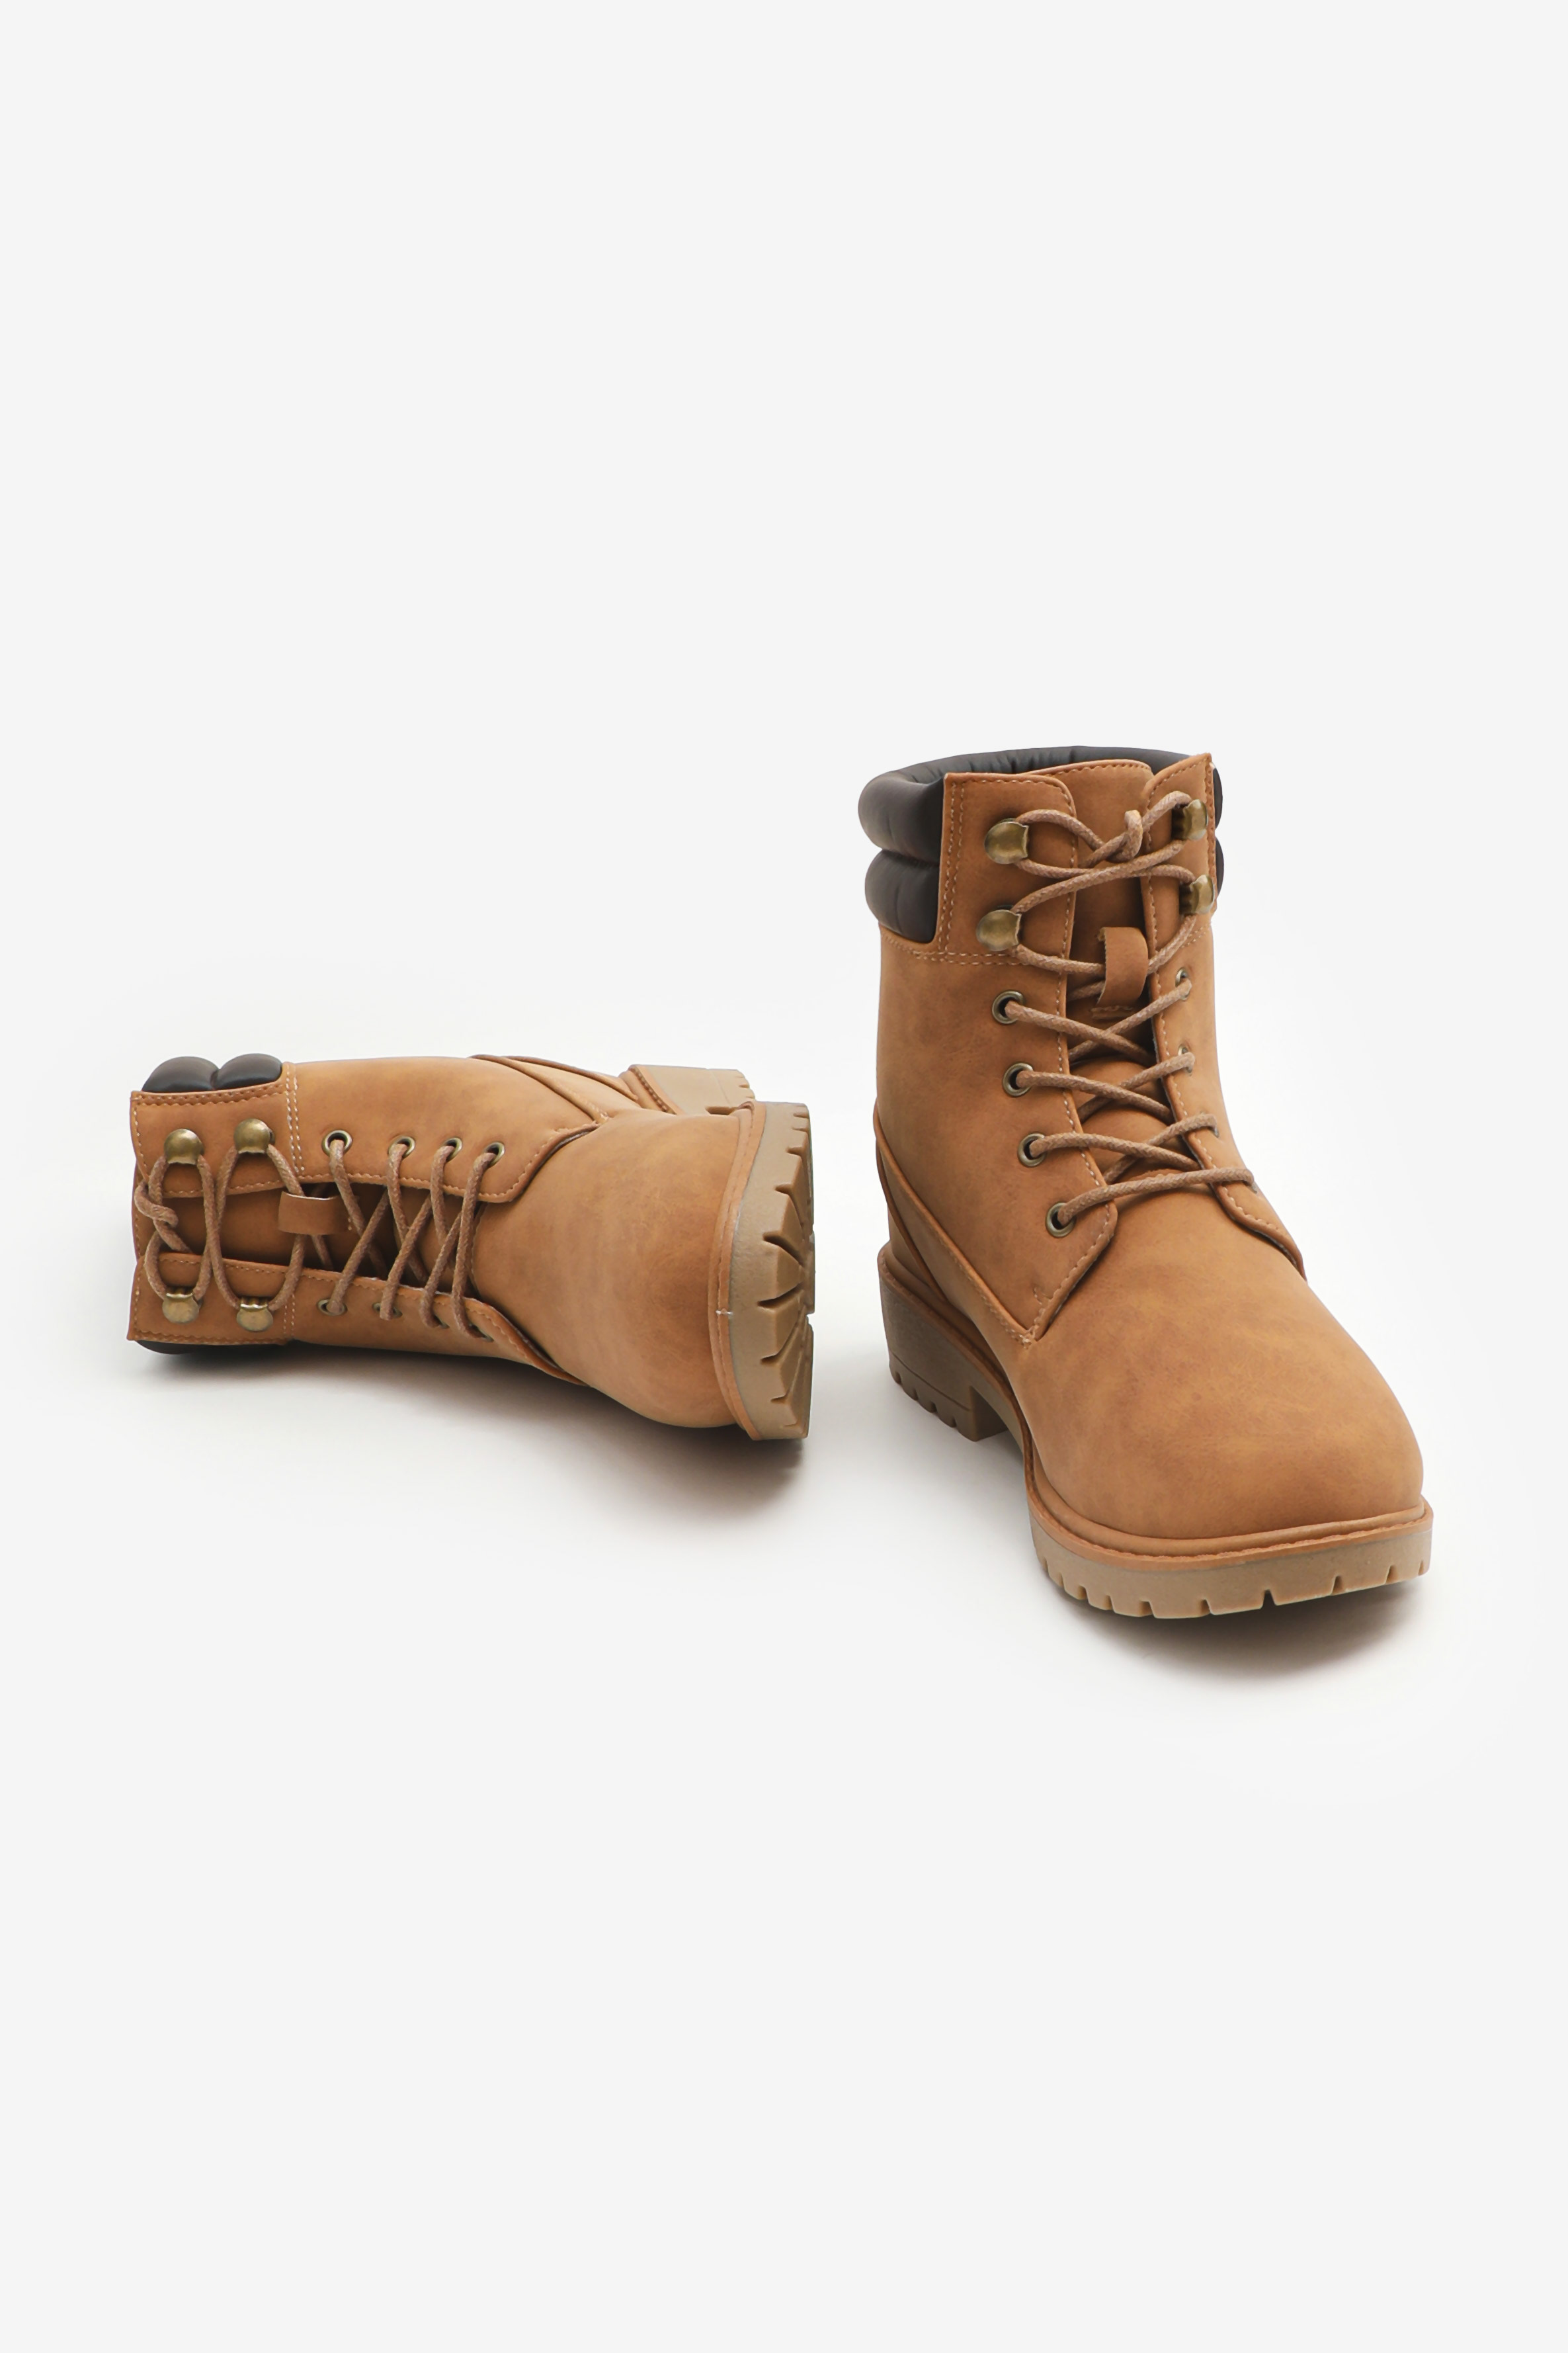 Track Hiker Boots